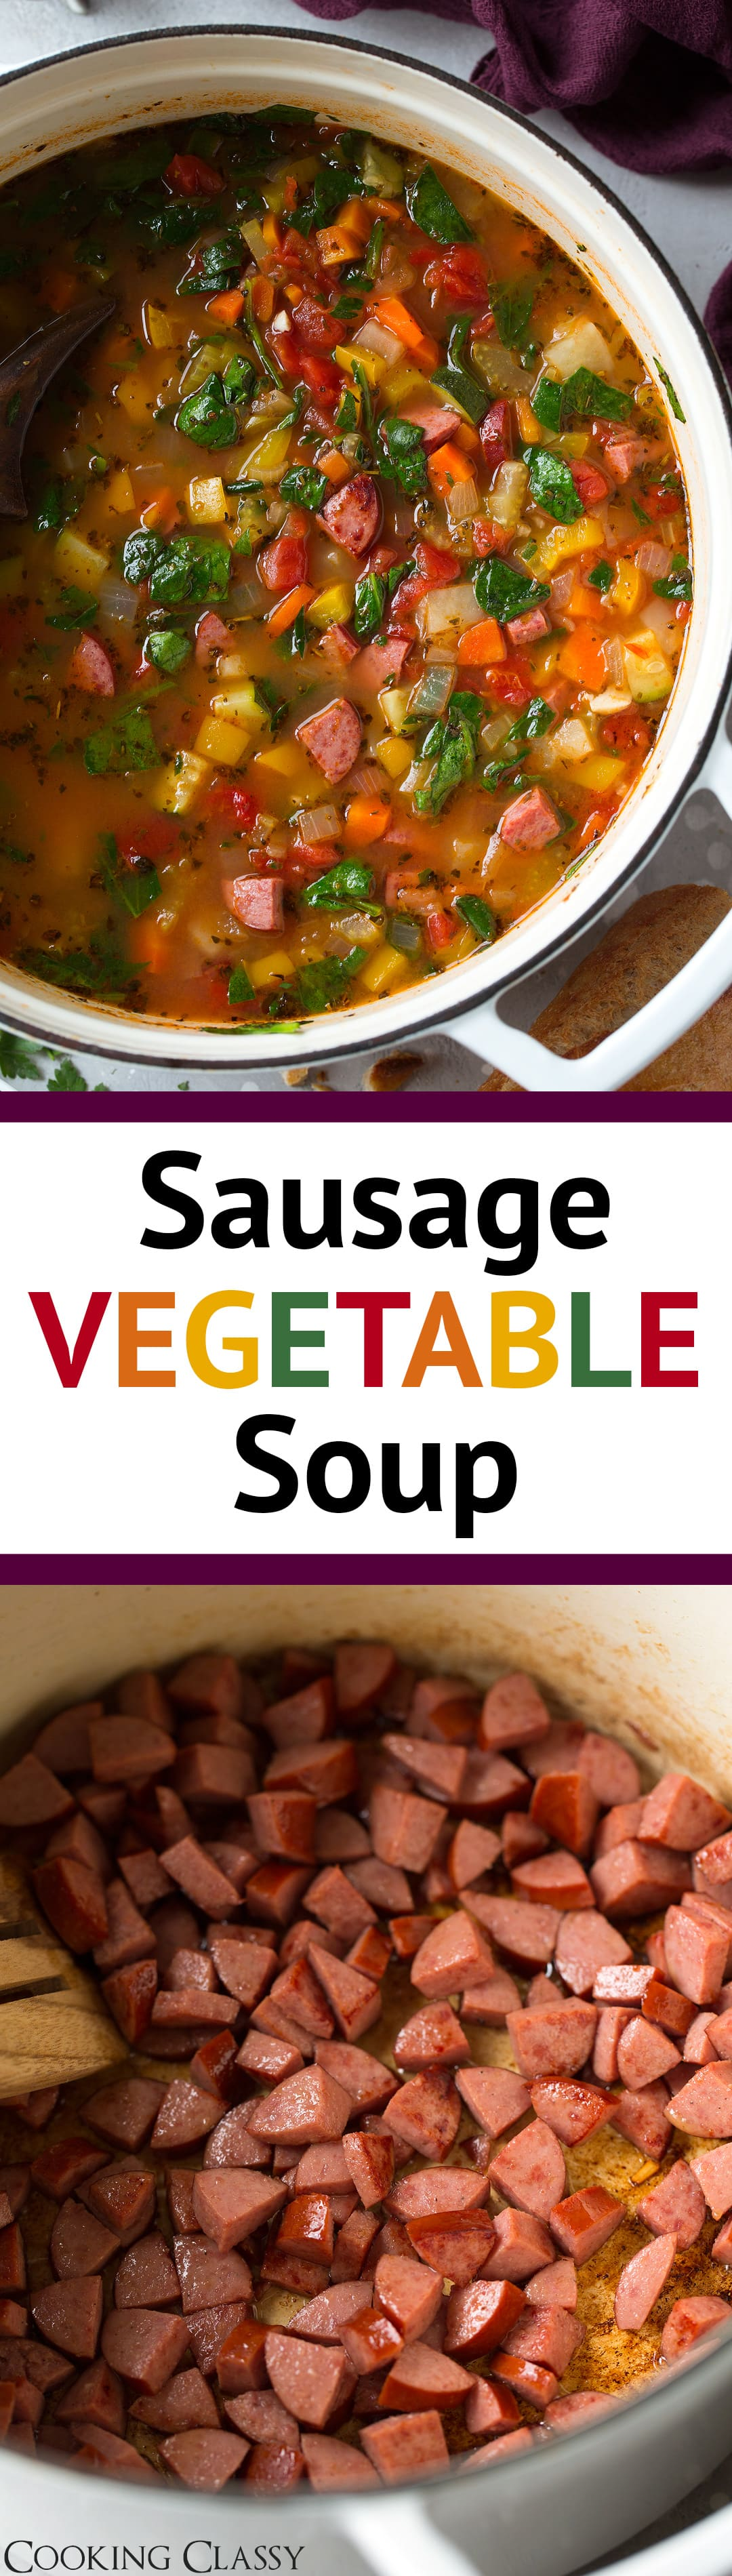 Sausage Vegetable Soup - this soup is easy to make and it's jam packed with nutritious veggies. The smoked sausage adds a great flavor and makes this soup that much more hearty. Serve it with some fresh crusty whole grain bread for an ideal winter dinner. #soup #vegetablesoup #sausagesoup #lunch #dinner #healthyrecipe